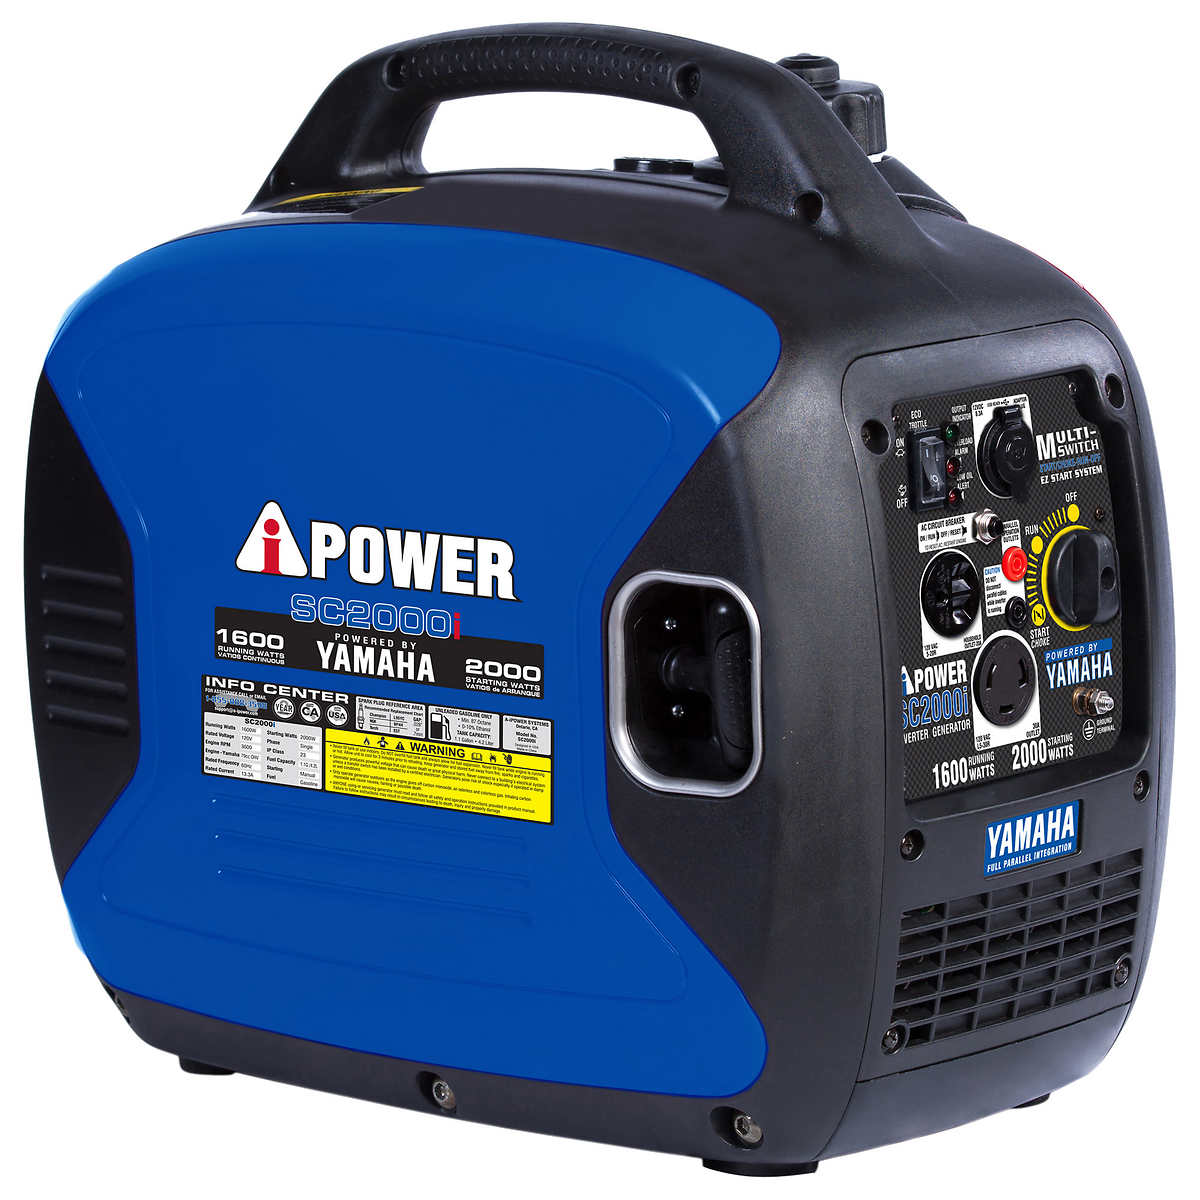 A i power yamaha 2000w gas inverter generator 1600w for Yamaha generator 2000